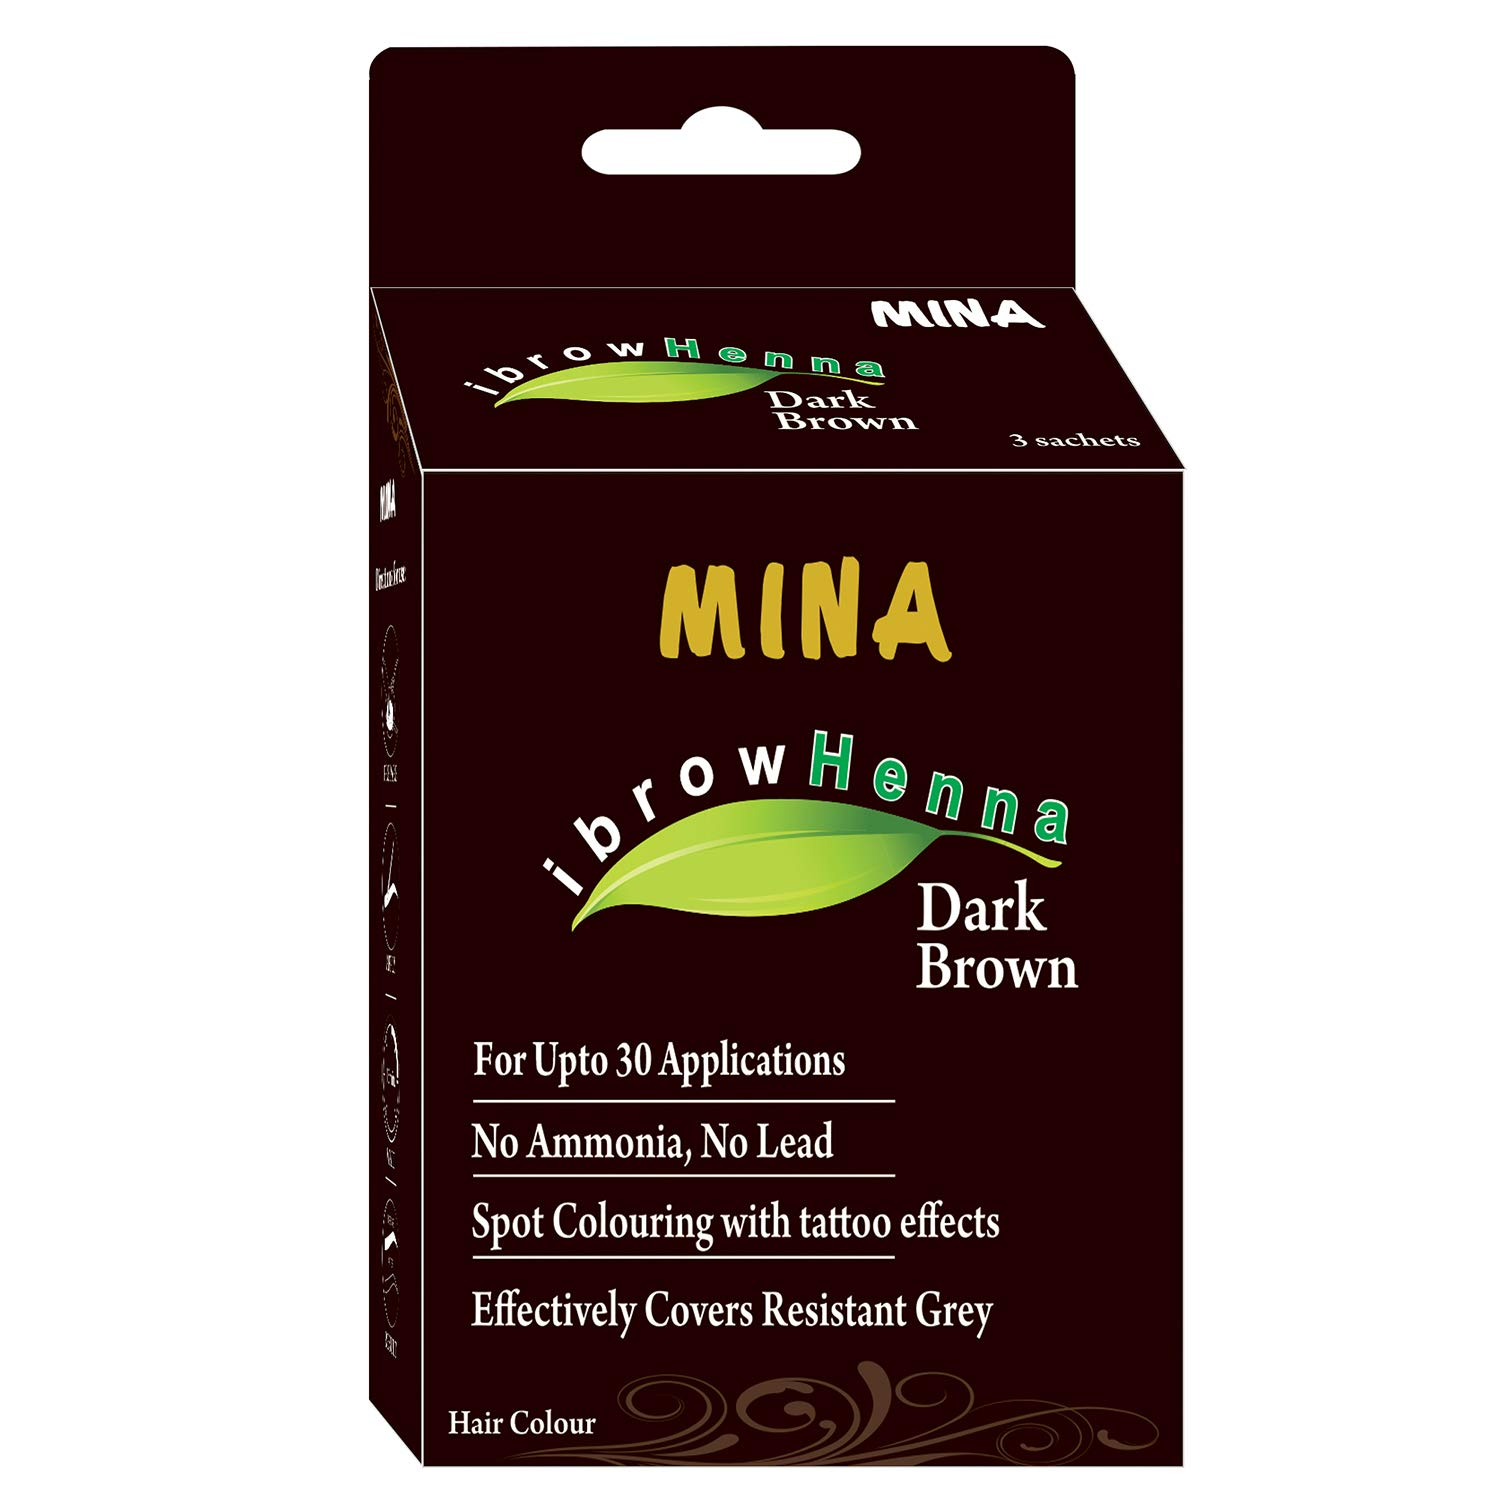 Mina Eyebrow Henna Dark Brown Regular Pack & Tinting Kit For Brow Dye